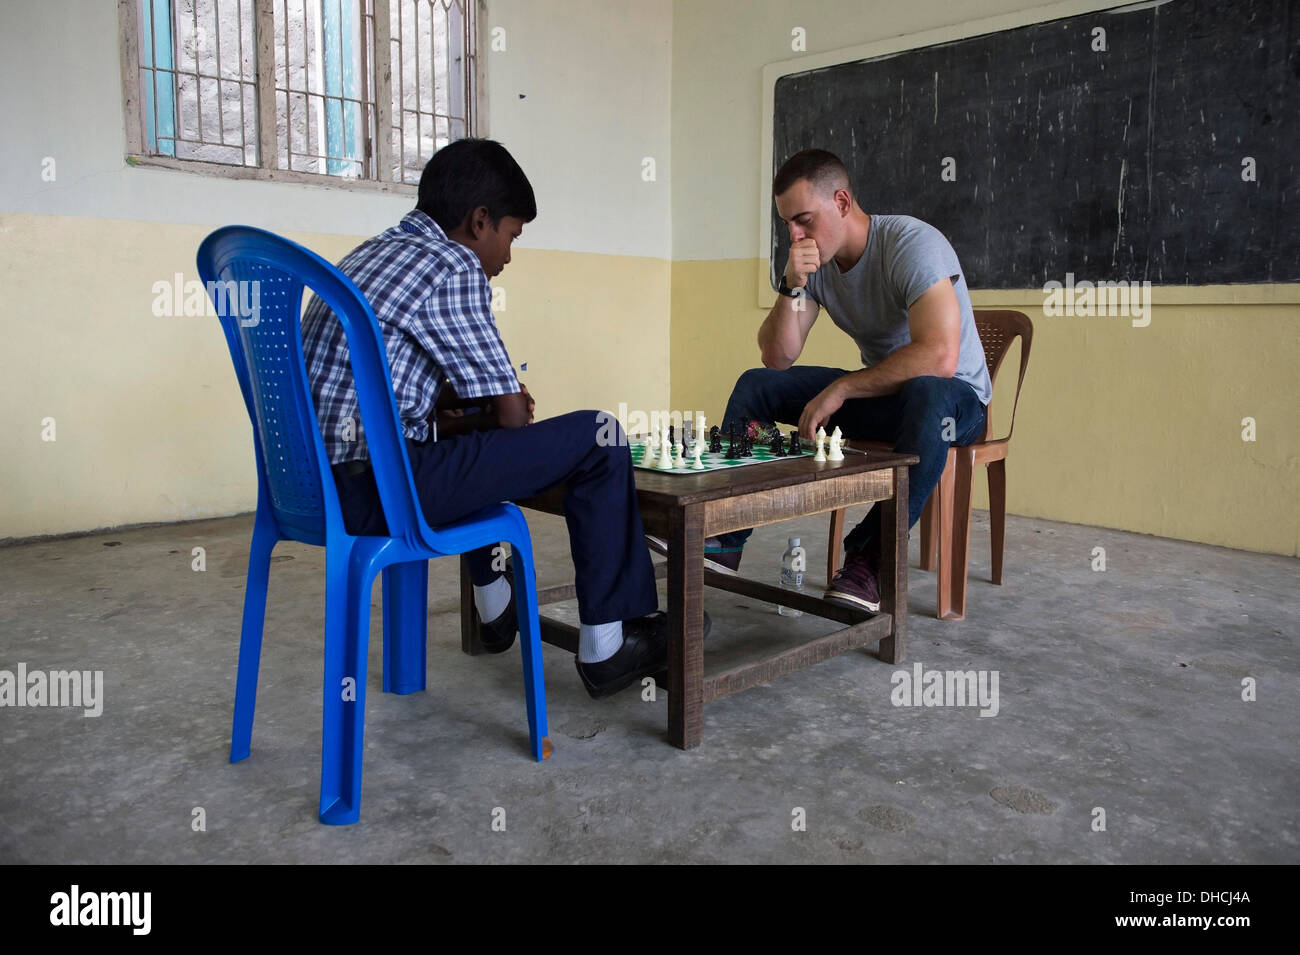 CHENNAI, India (Nov. 5, 2013) Ensign Matias del Castillo, (right) assigned to the Arleigh Burke-class guided-missile destroyer USS McCampbell (DDG 85), plays a game of chess with a student of the Hyder Garden Matric School as a part of a community service - Stock Image